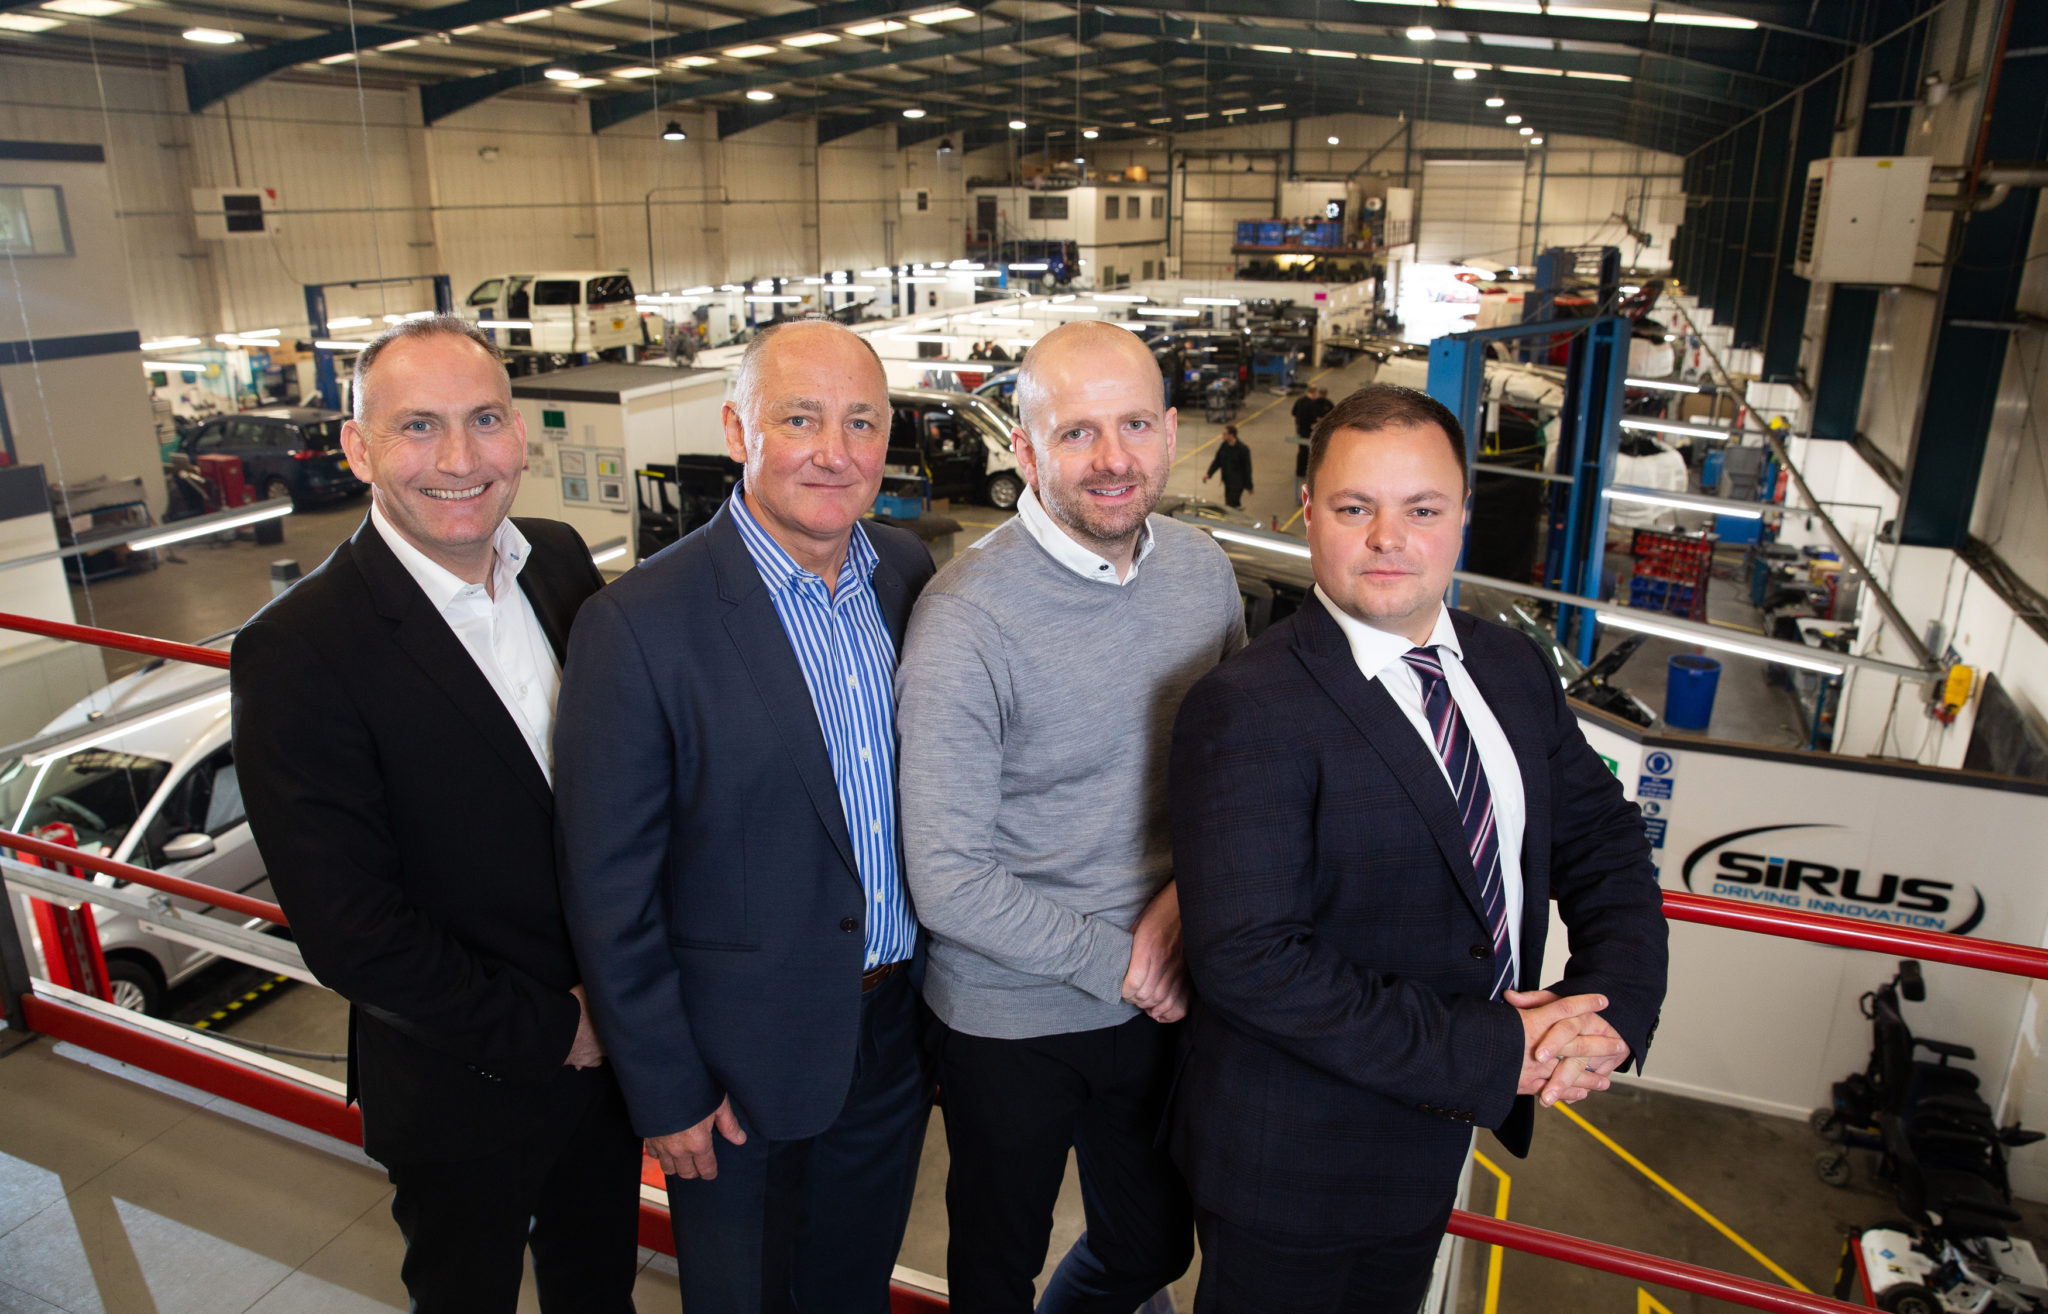 WAV firm to use £500k refinancing package to fuel R&D projects and